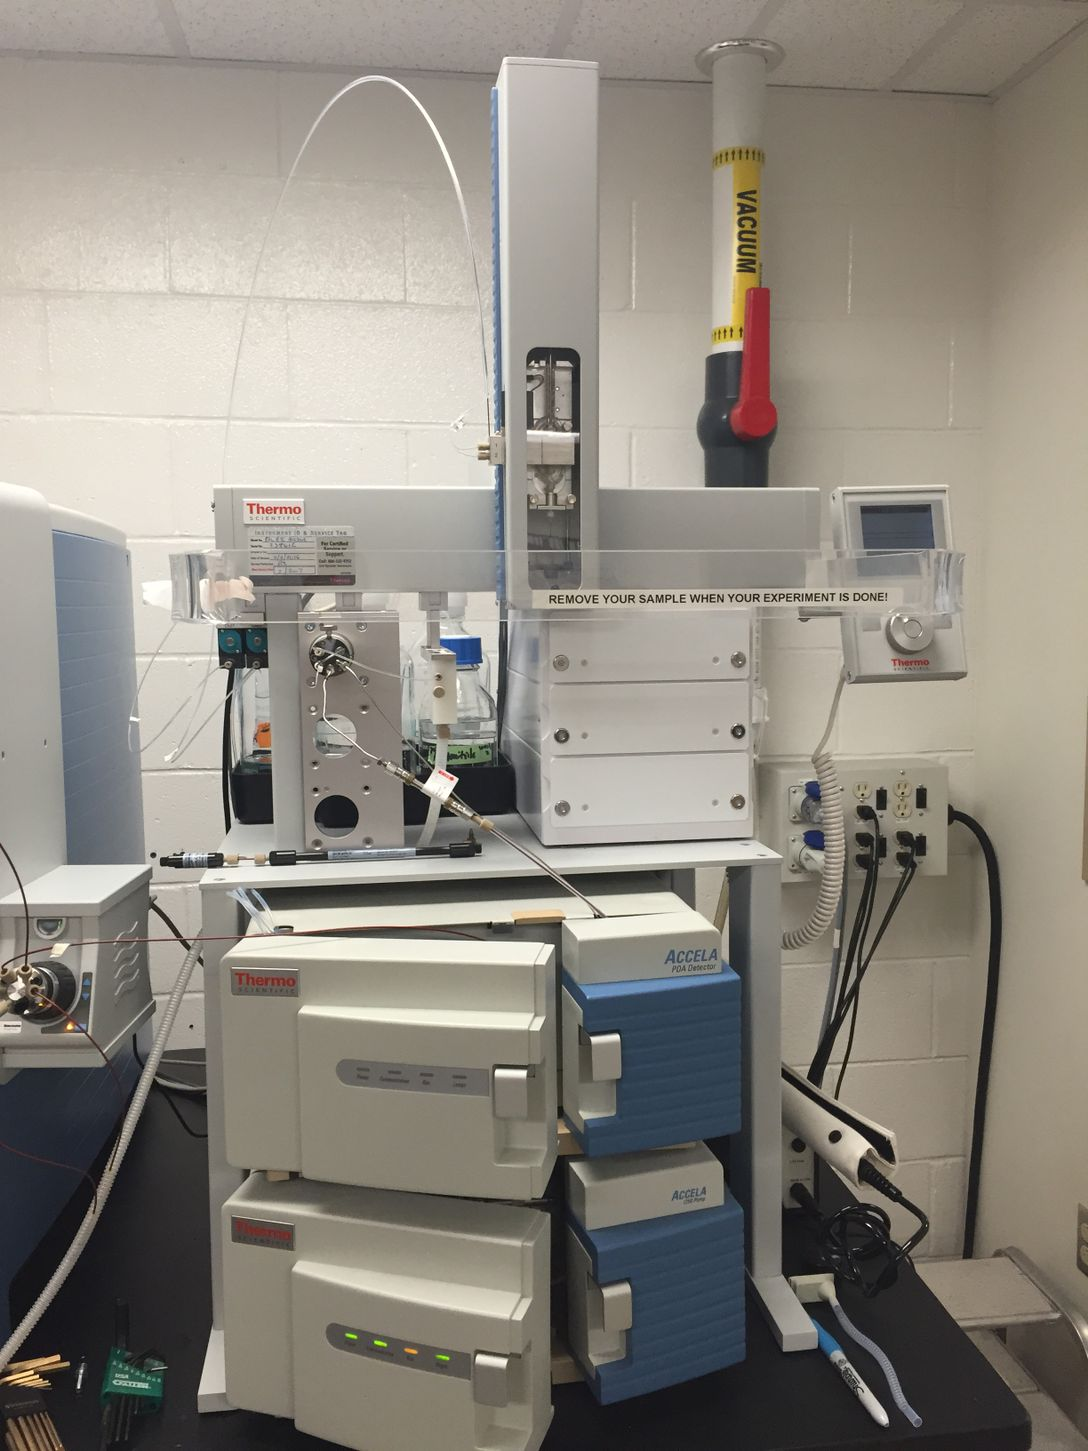 Thermofisher Scientific Accela Ultra High Performance Liquid Chromatography